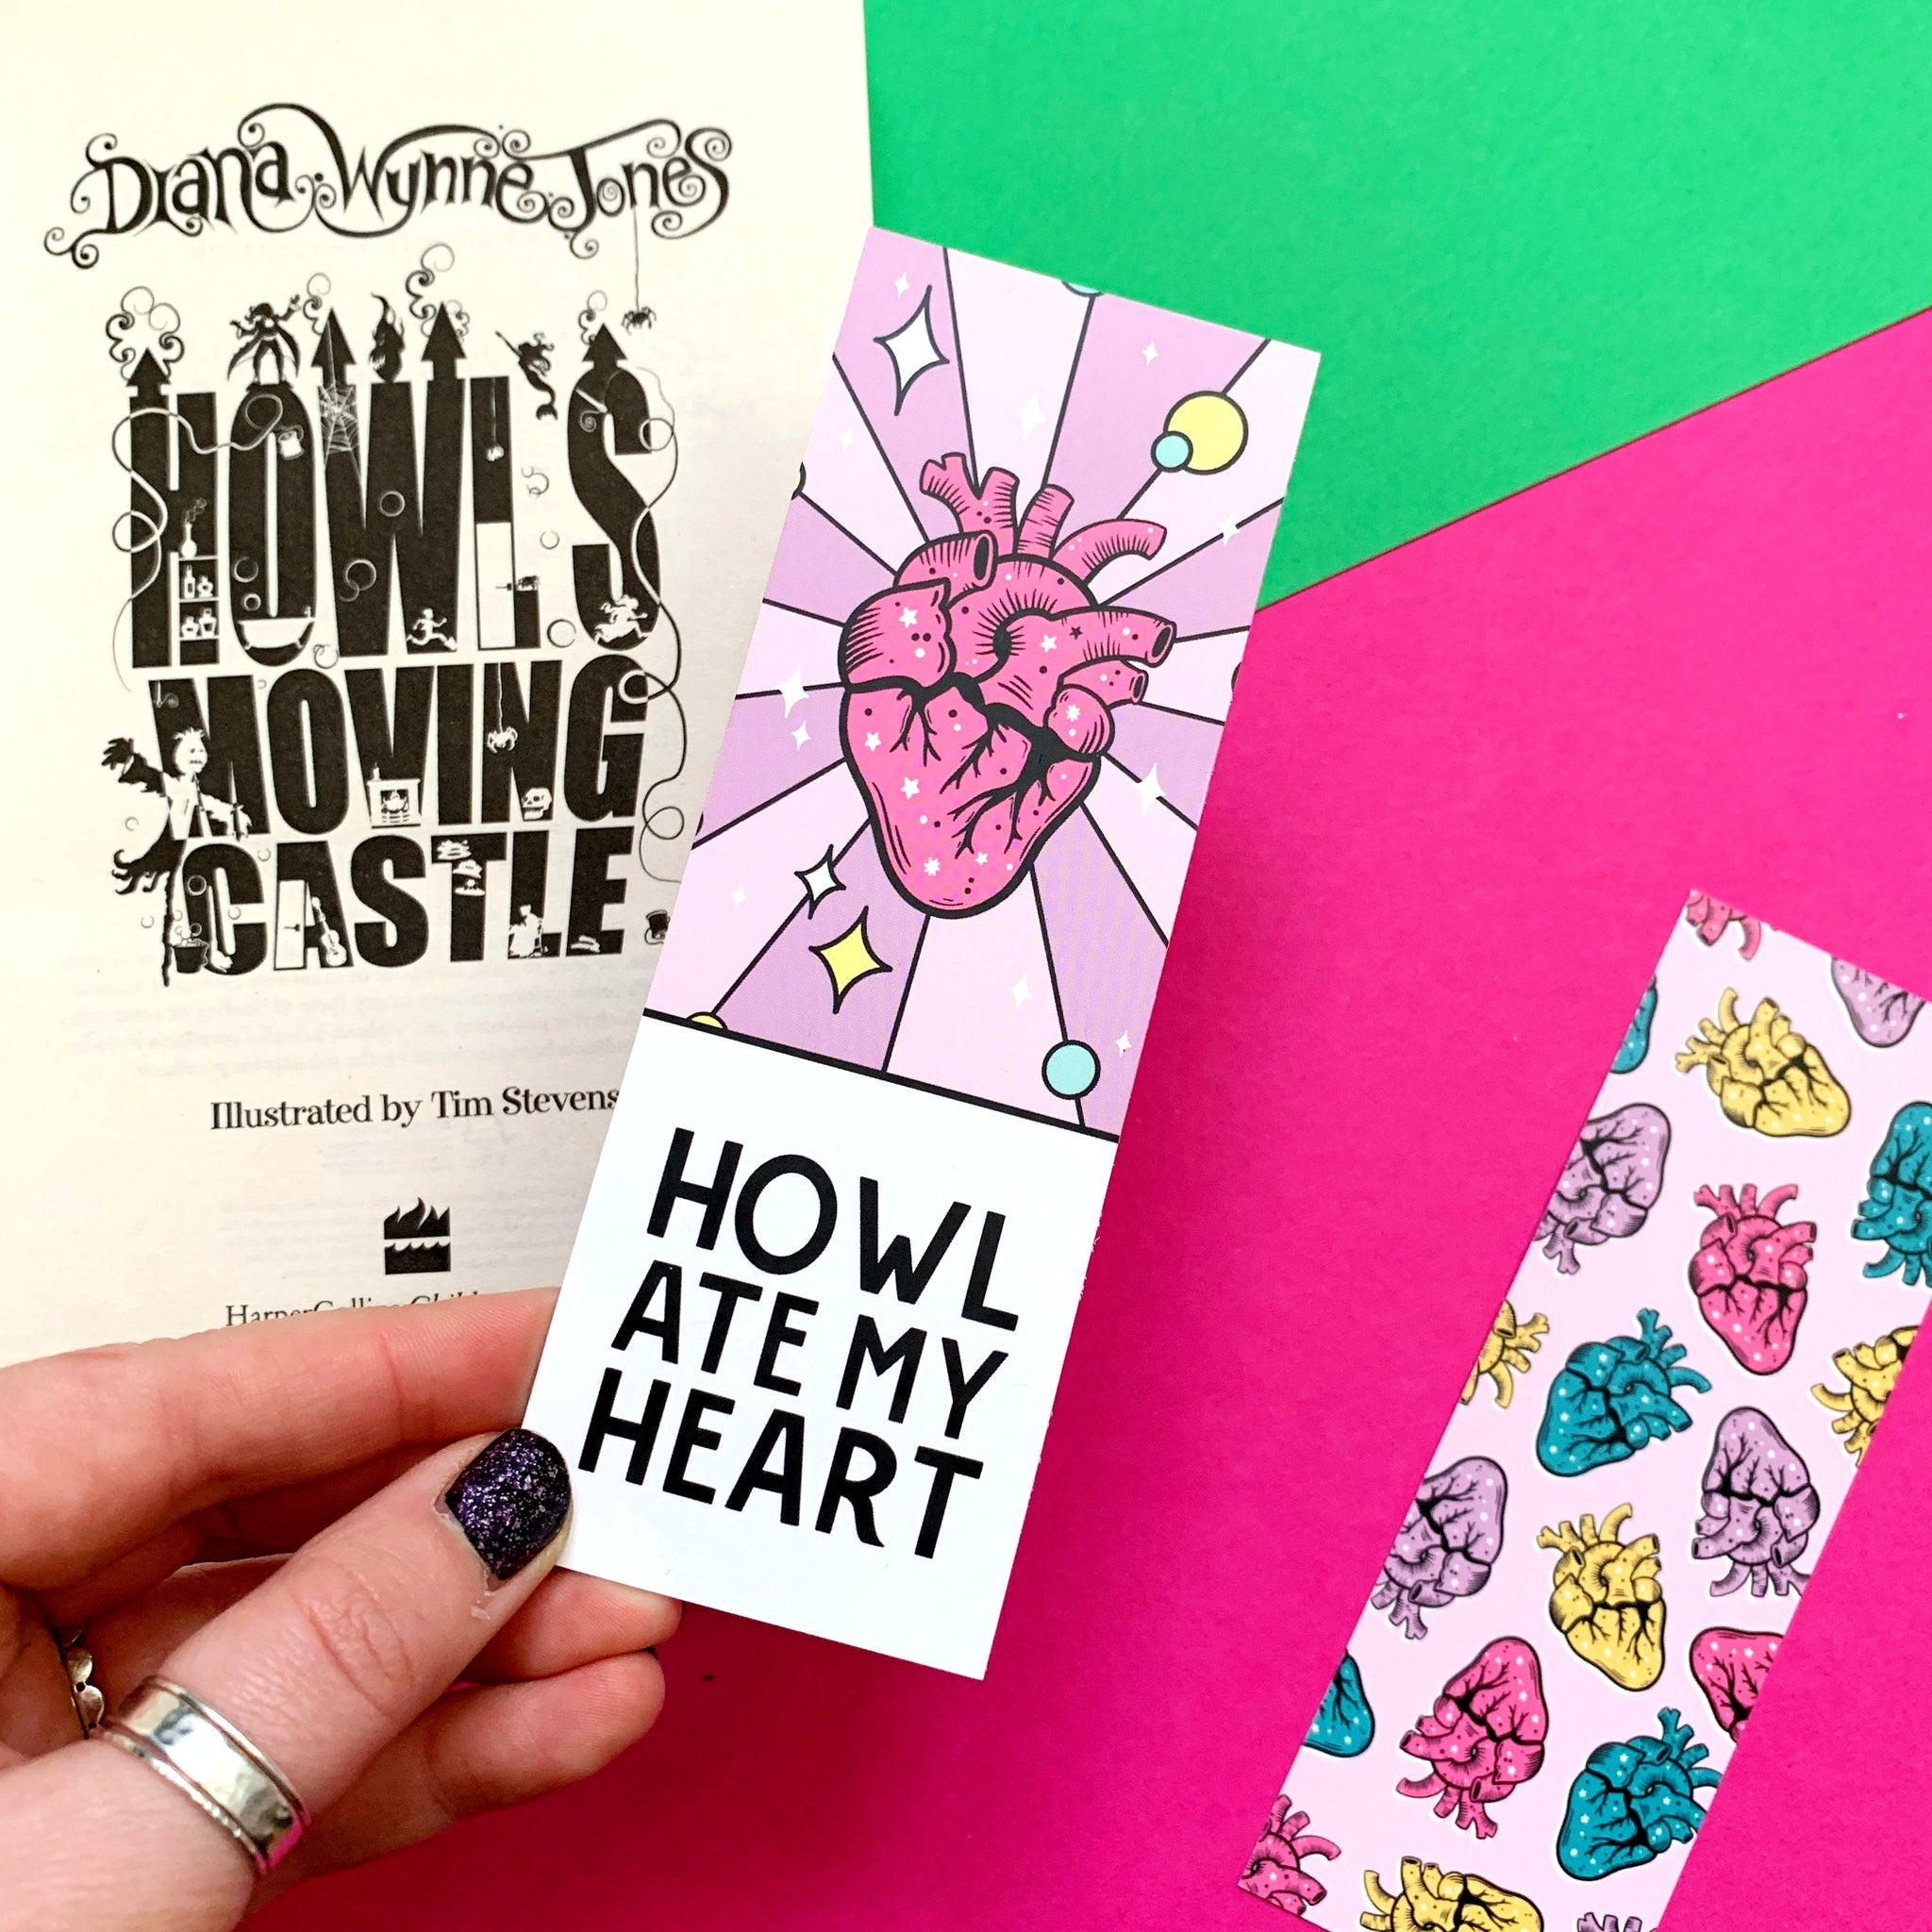 Howl ate my heart Bookmark by Fable and Black